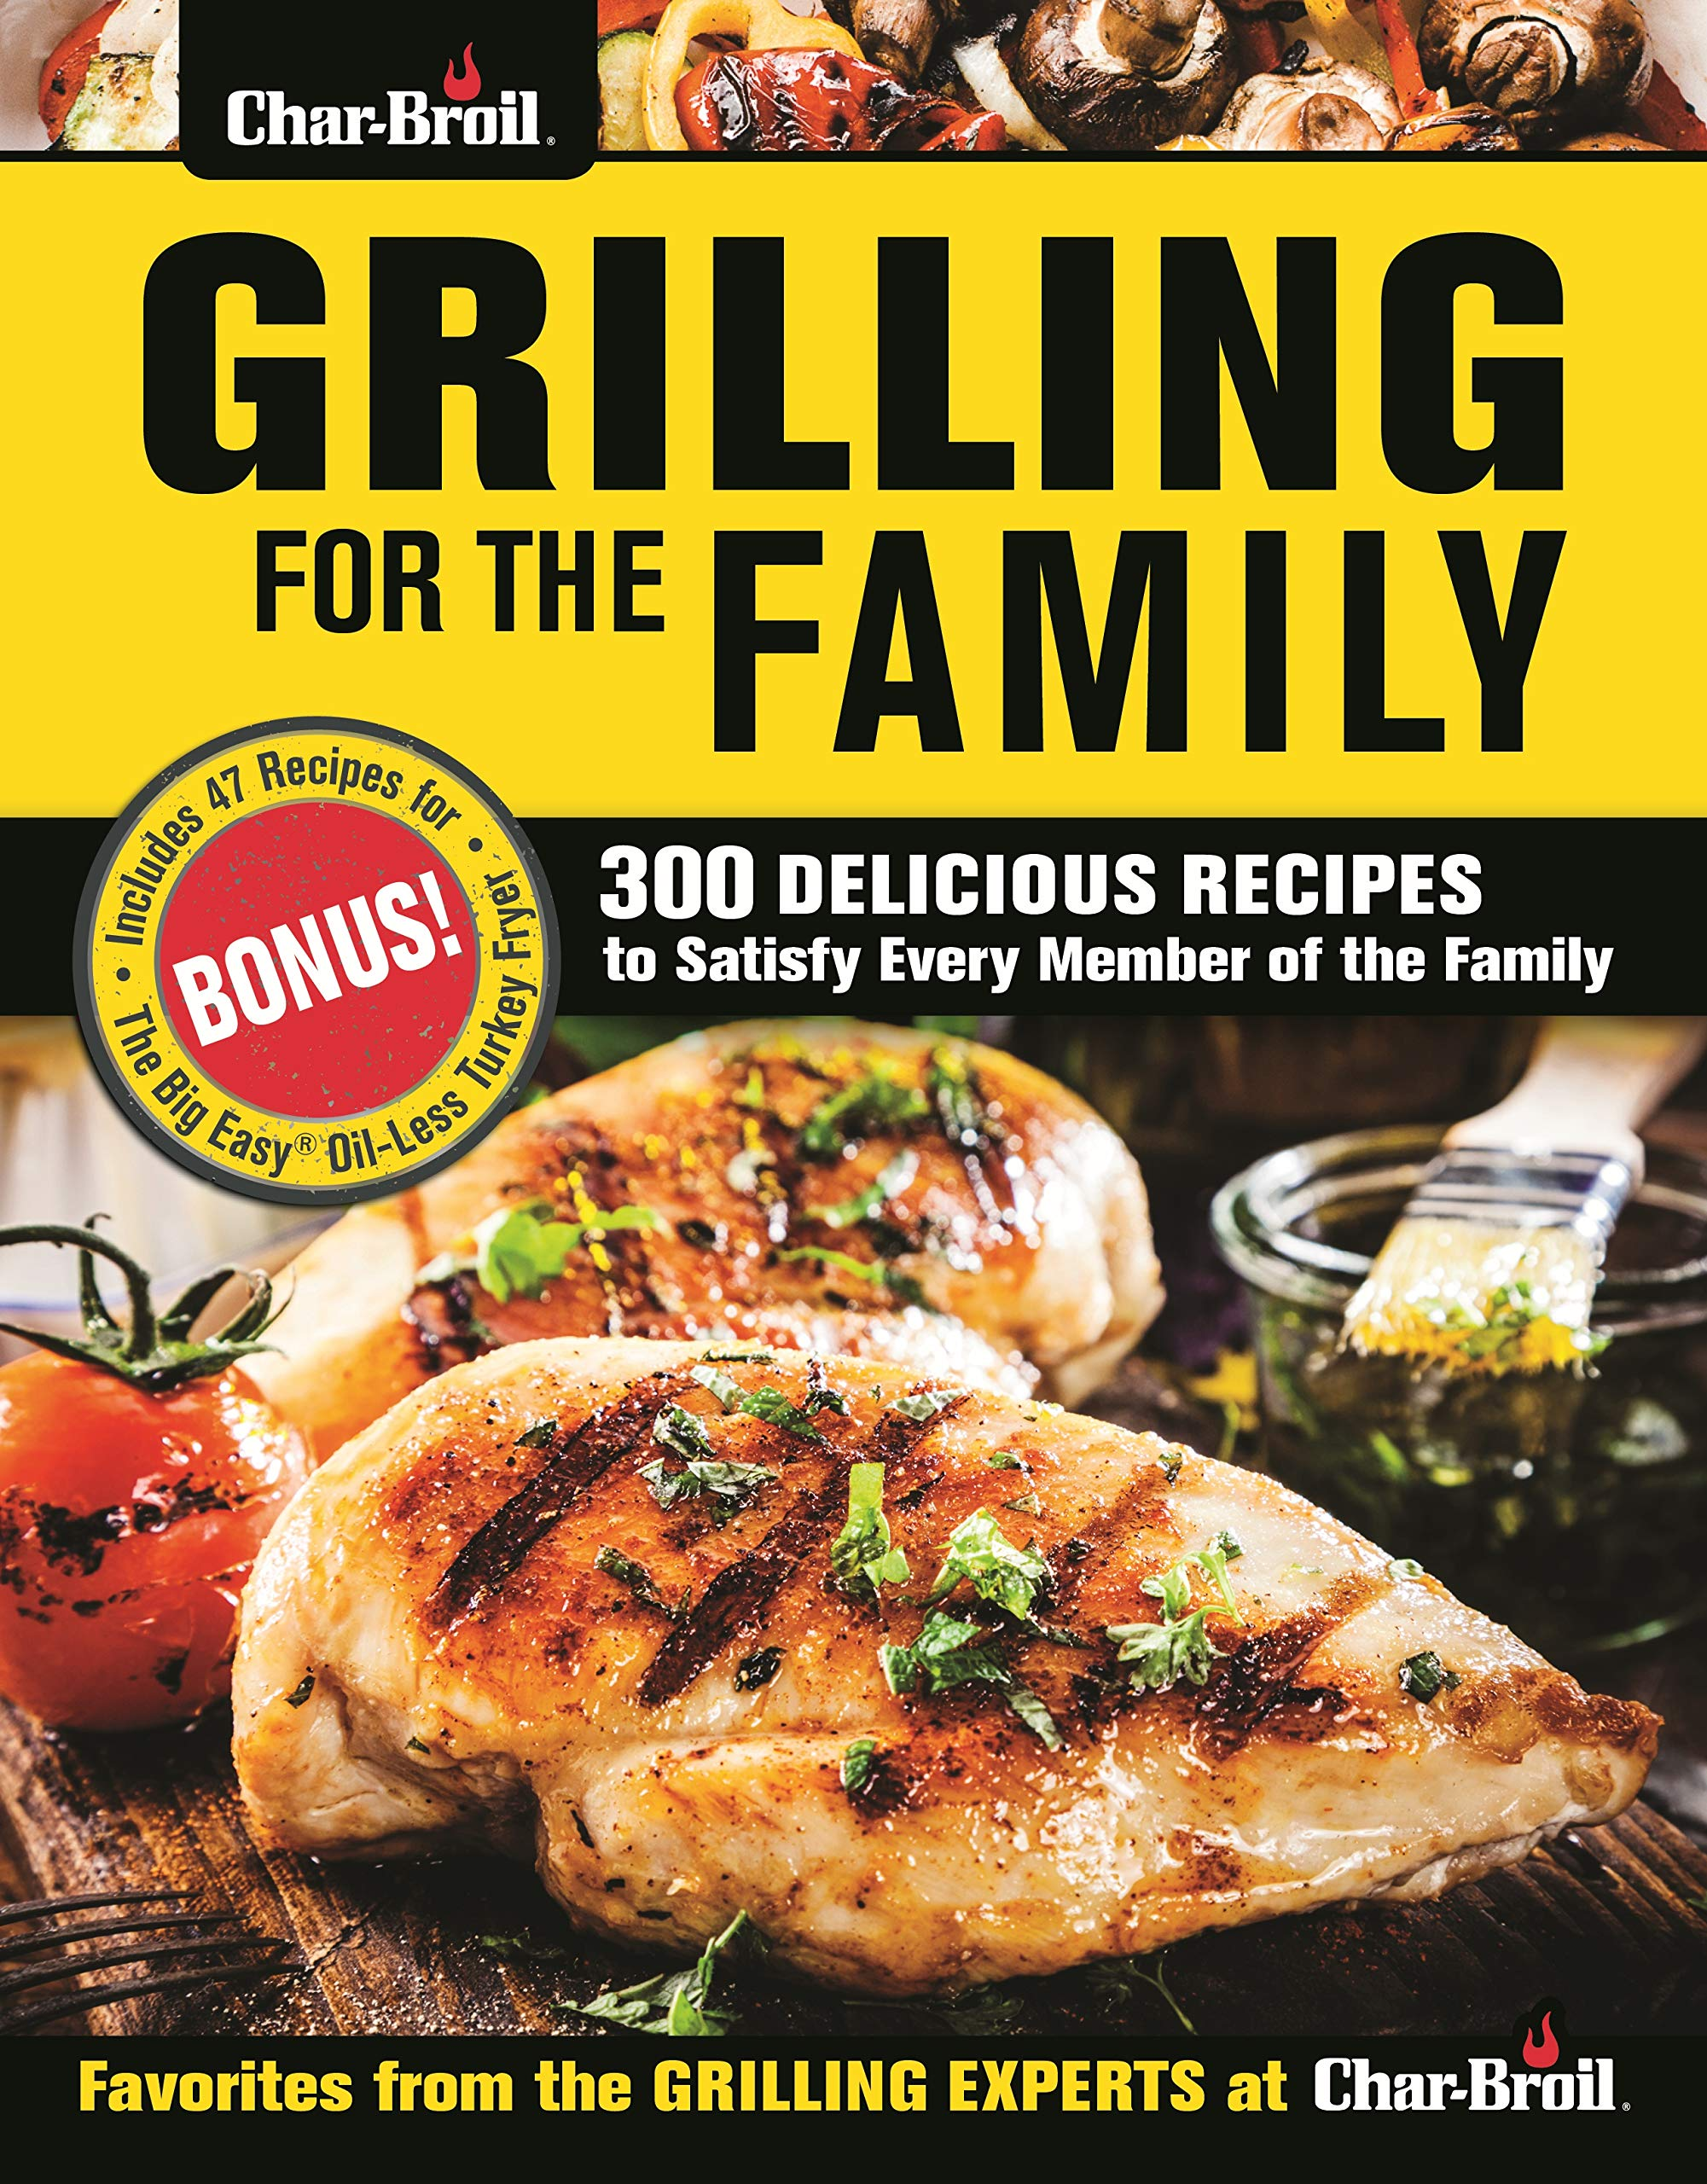 Amazon.com: Char-Broil Grilling for the Family: 300 ...